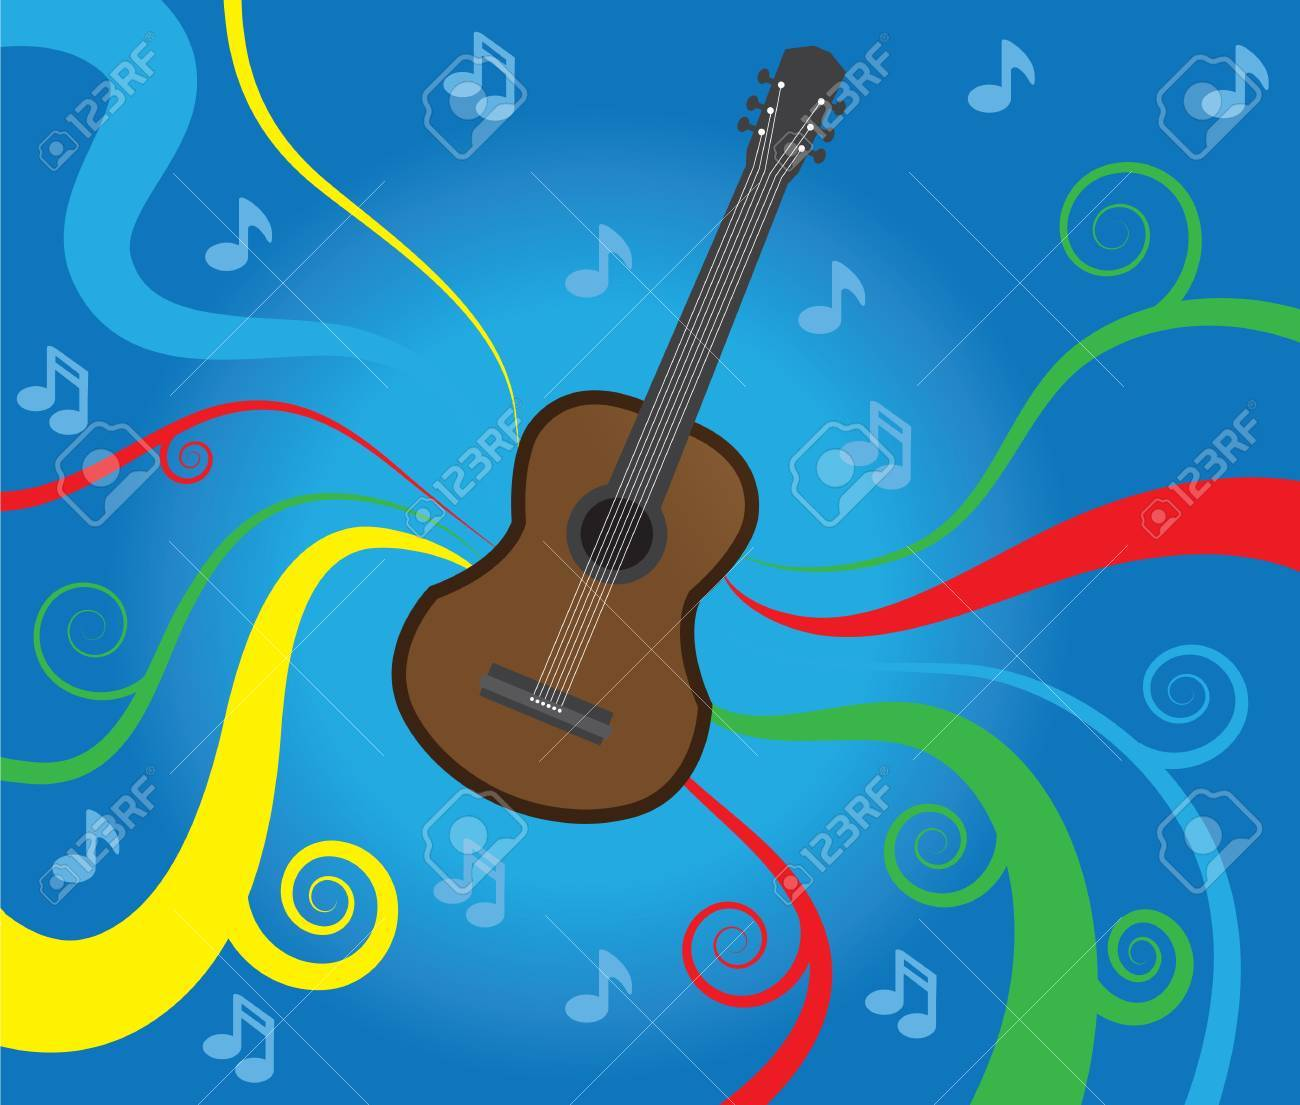 Music graphics flowing behind a guitar Stock Vector - 13070415